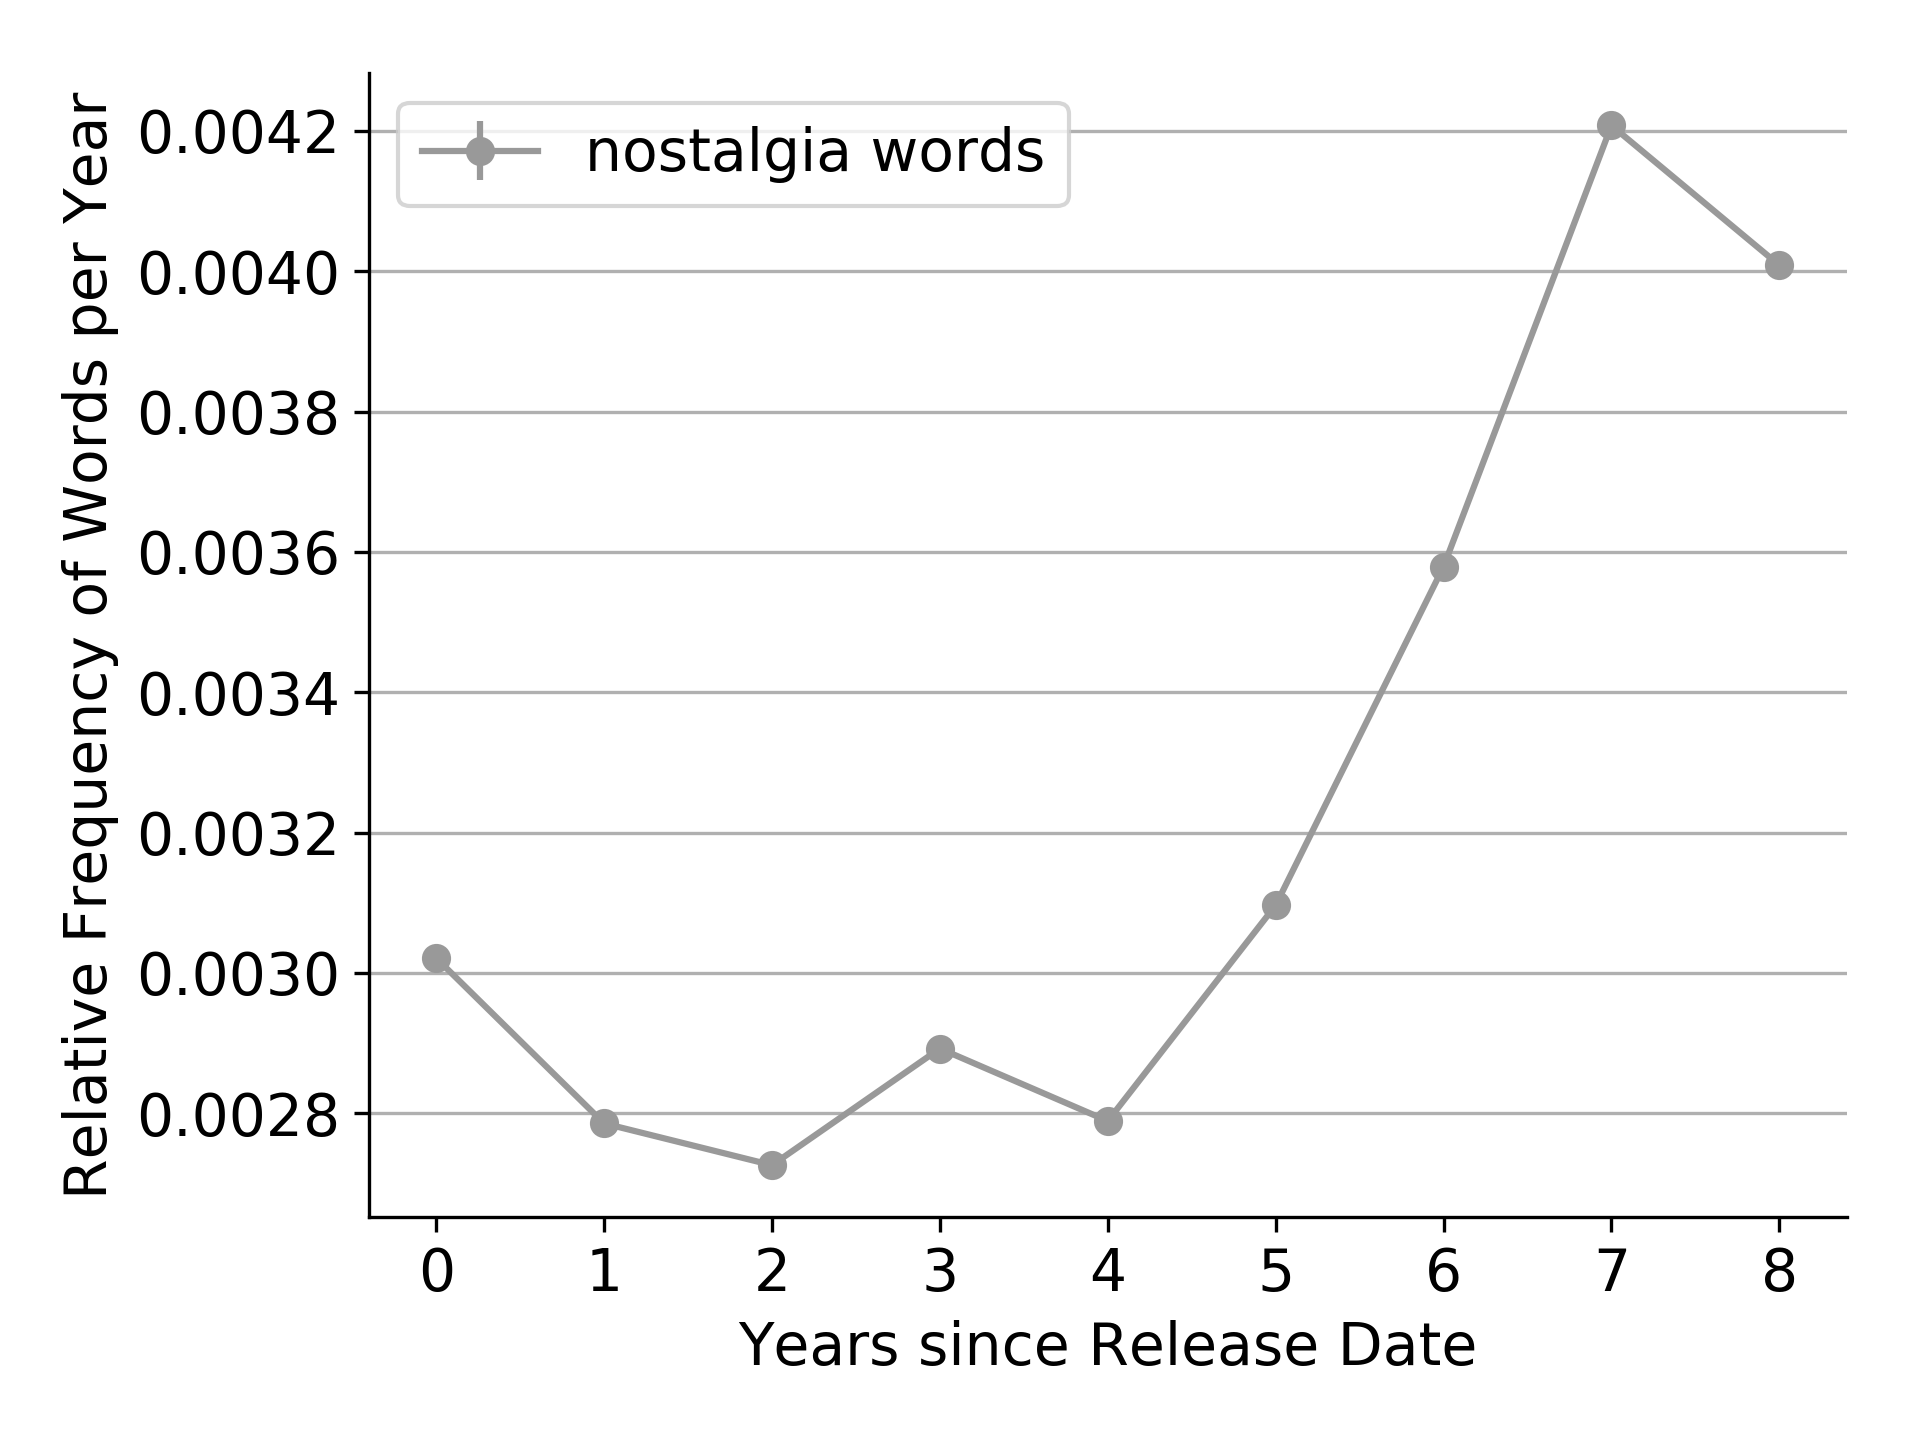 Graph depicting usage of nostalgia-related words per year passed since game release date